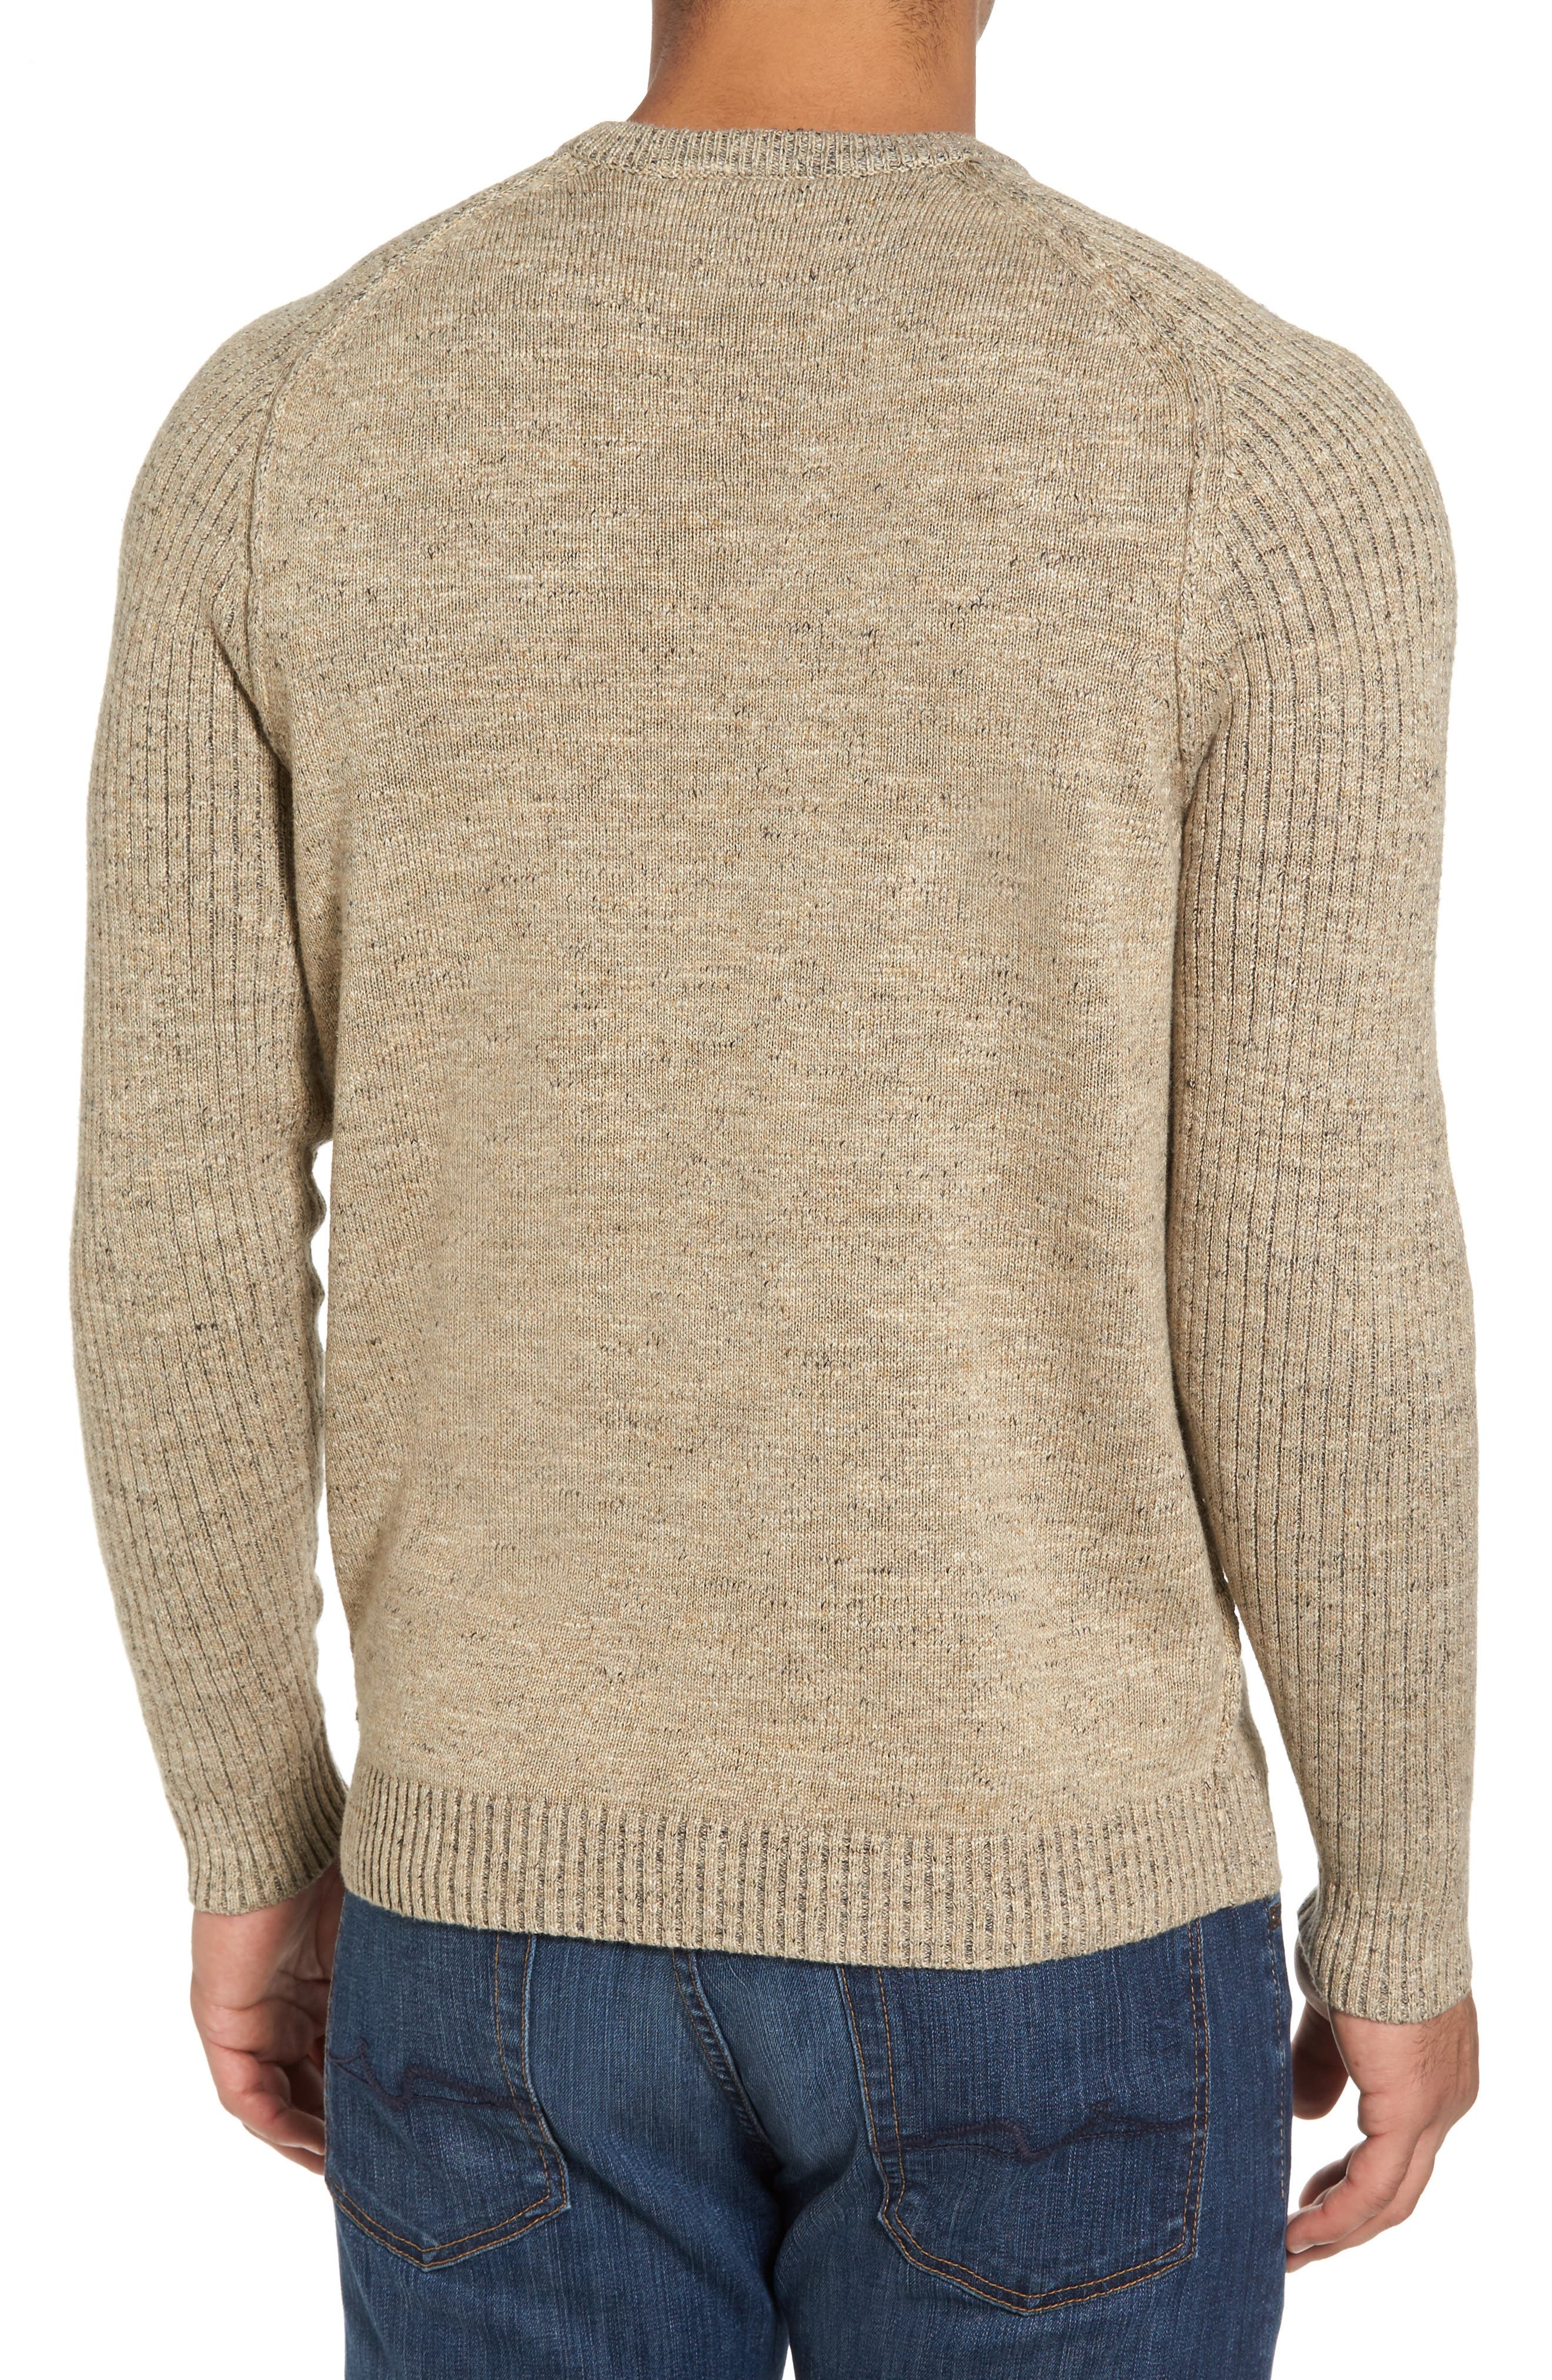 Gran Rey Flip Reversible Cotton & Wool Sweater,                             Alternate thumbnail 4, color,